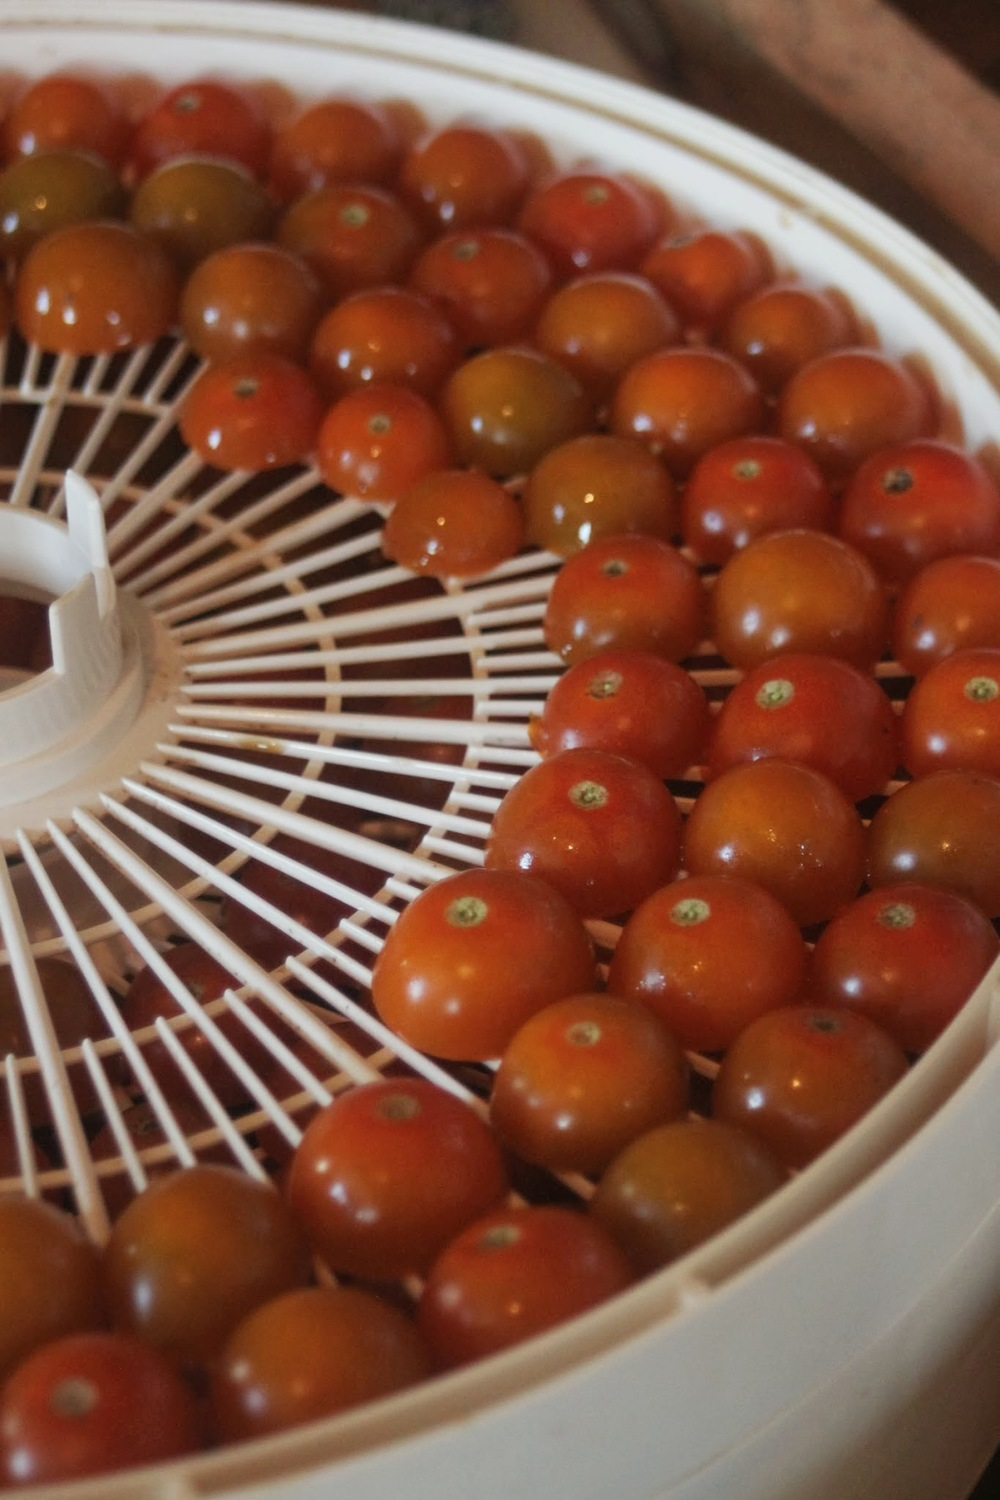 dehydrating tomatoes.jpg